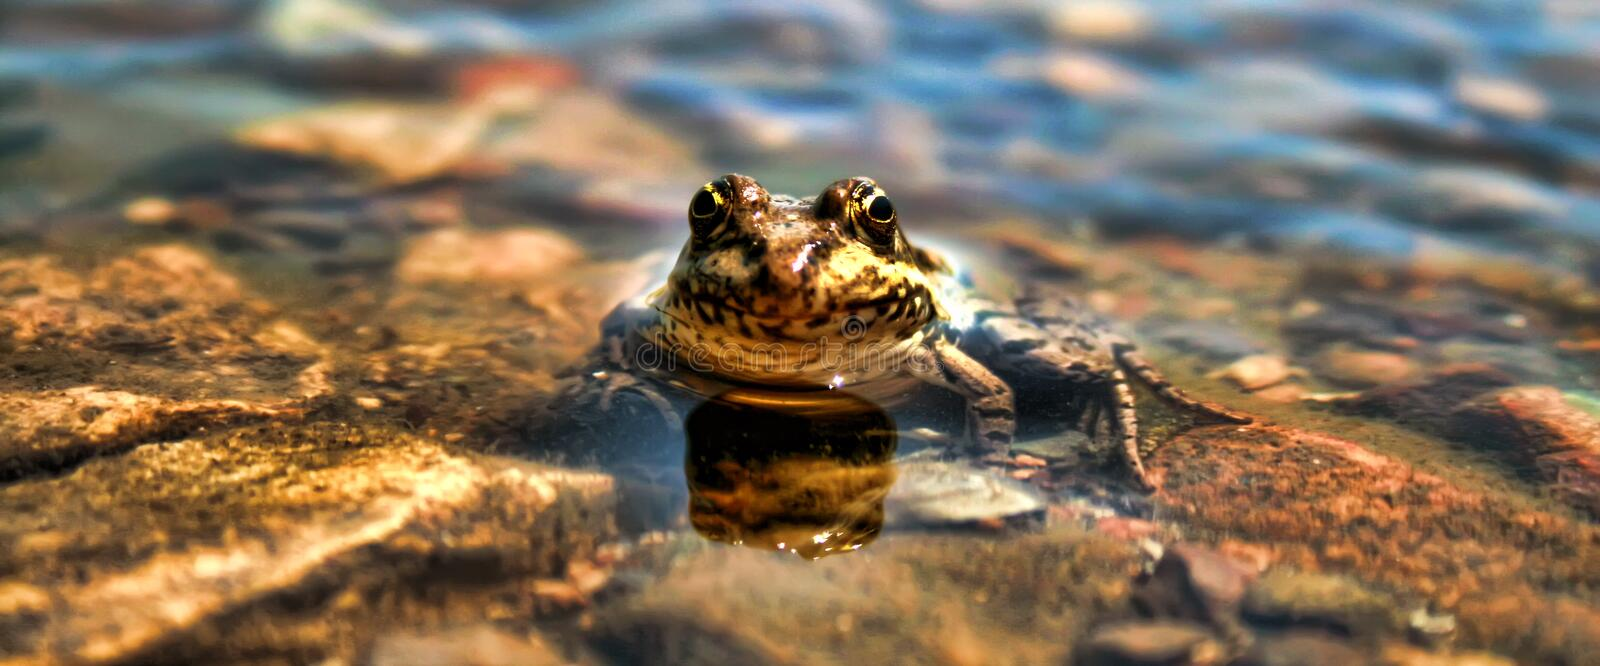 Common Frog Submerged Low Angle. Submerged Frog Staring Straight Into The Camera royalty free stock images